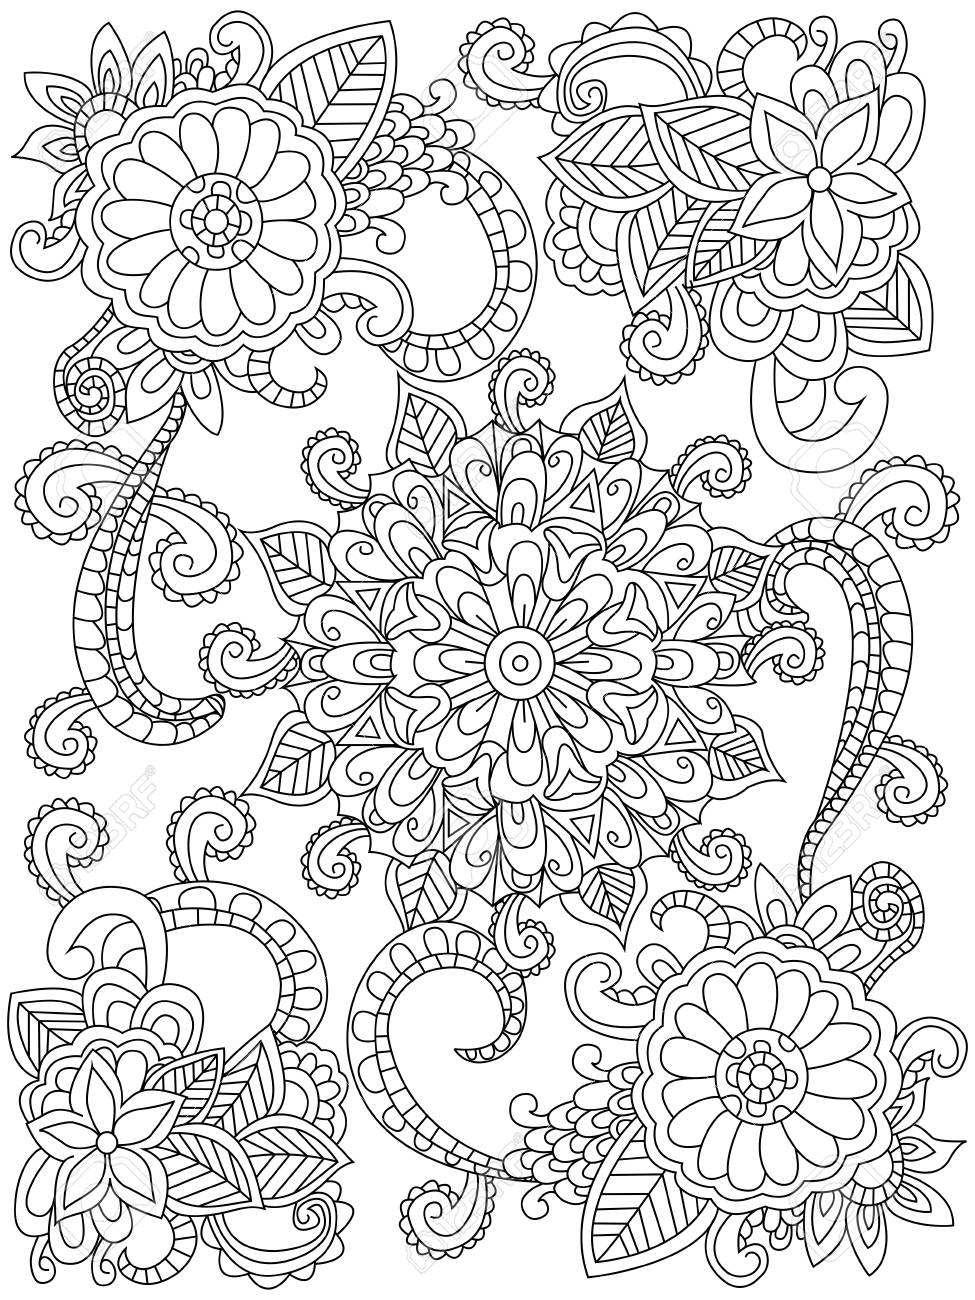 Mandala Flower Coloring Book For Adults Illustration Anti Stress